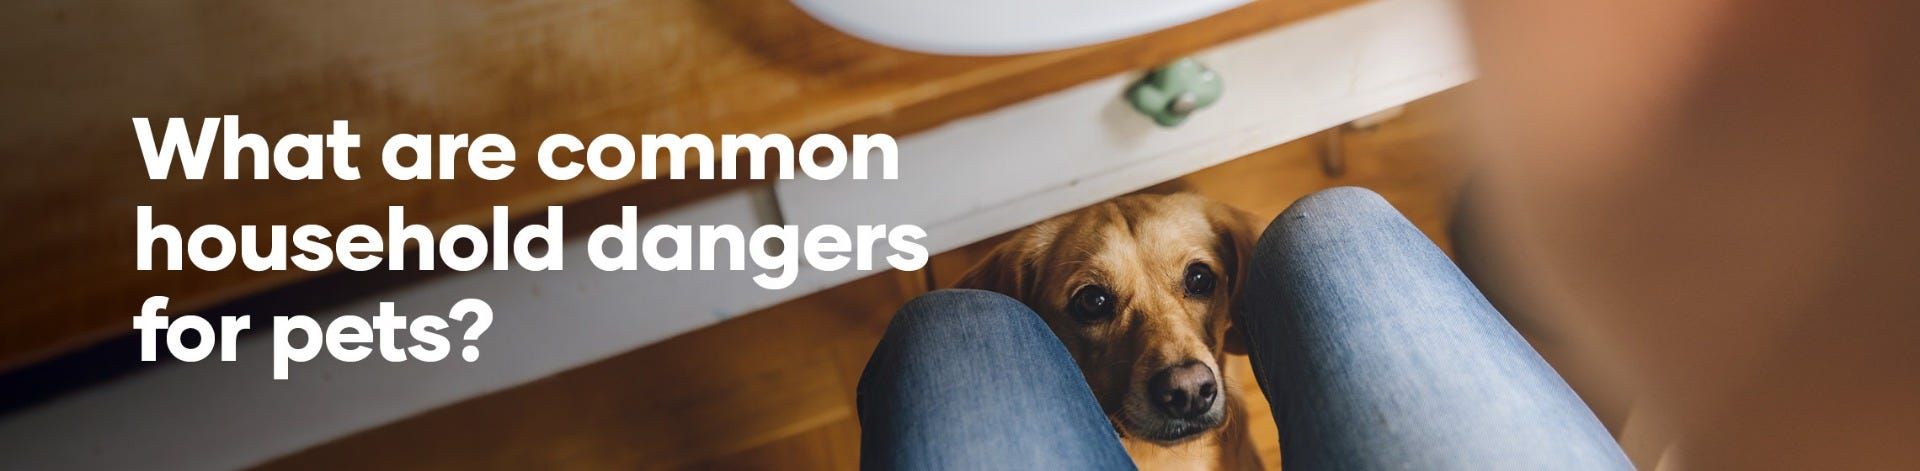 What are common household dangers for pets?